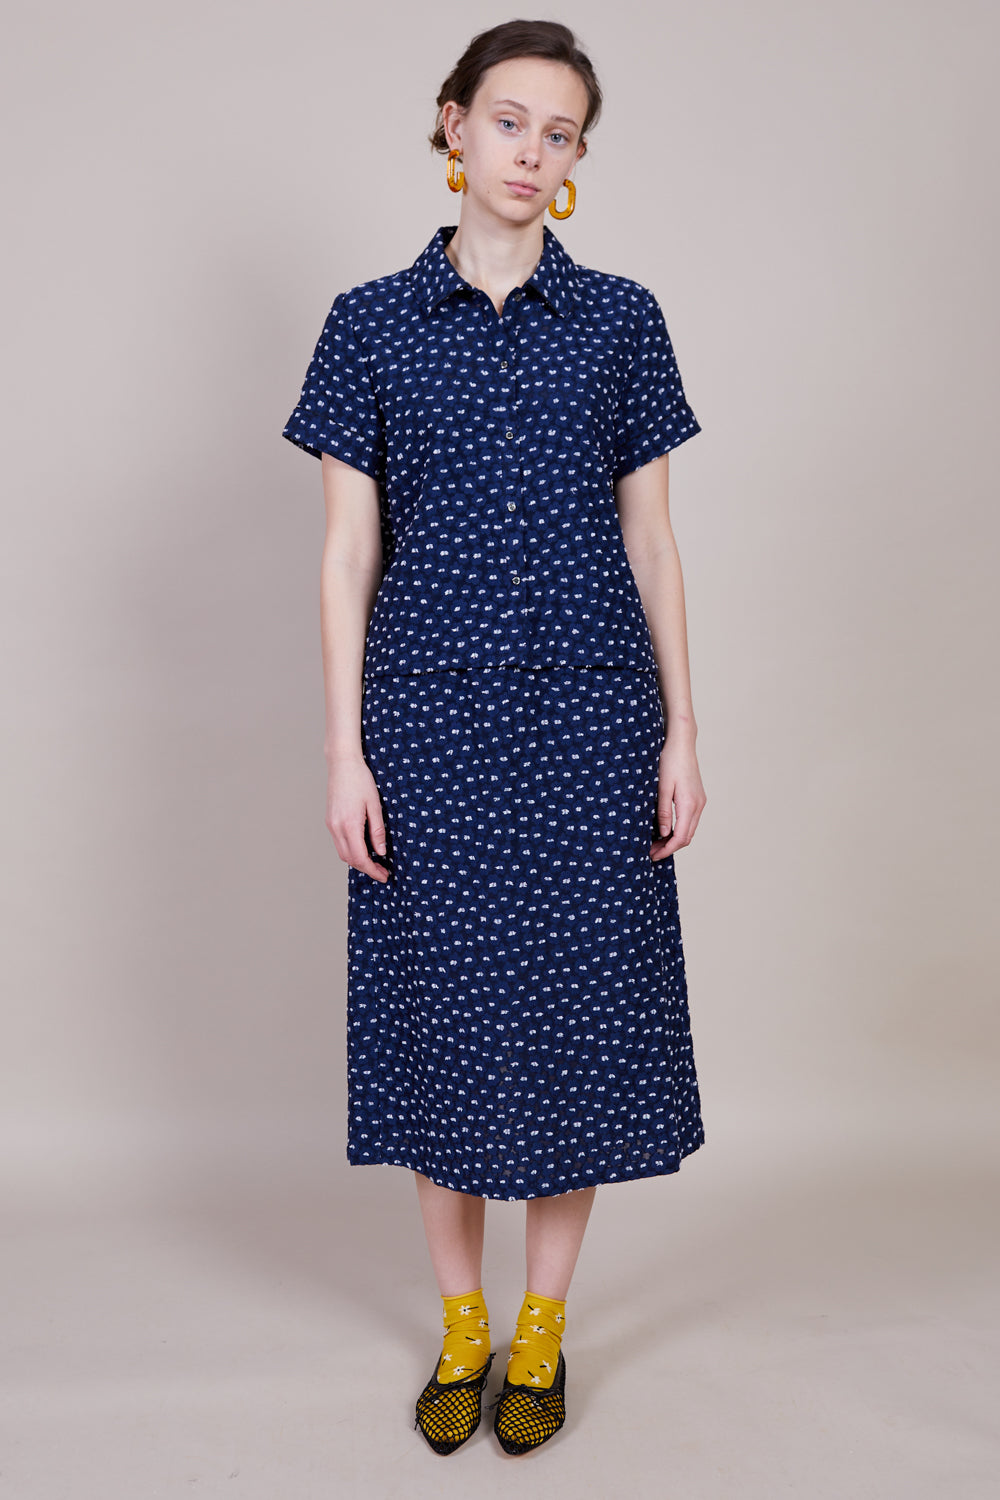 Hansel From Basel Daisy Edith Top in Navy - Vert & Vogue